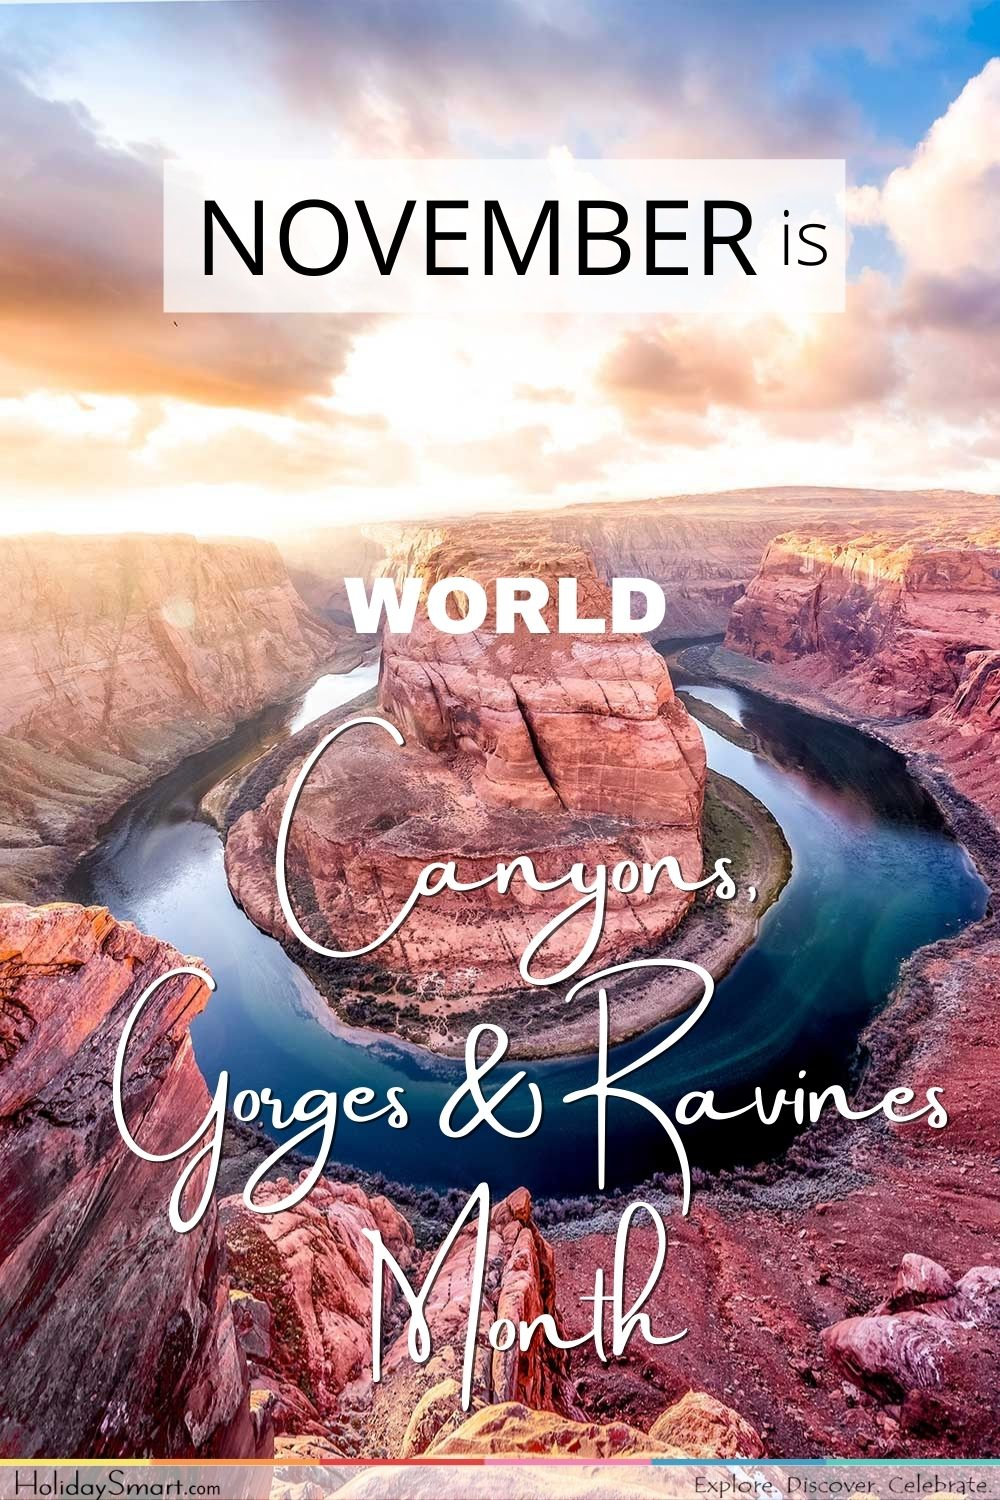 World Canyons, Gorges & Ravines Month